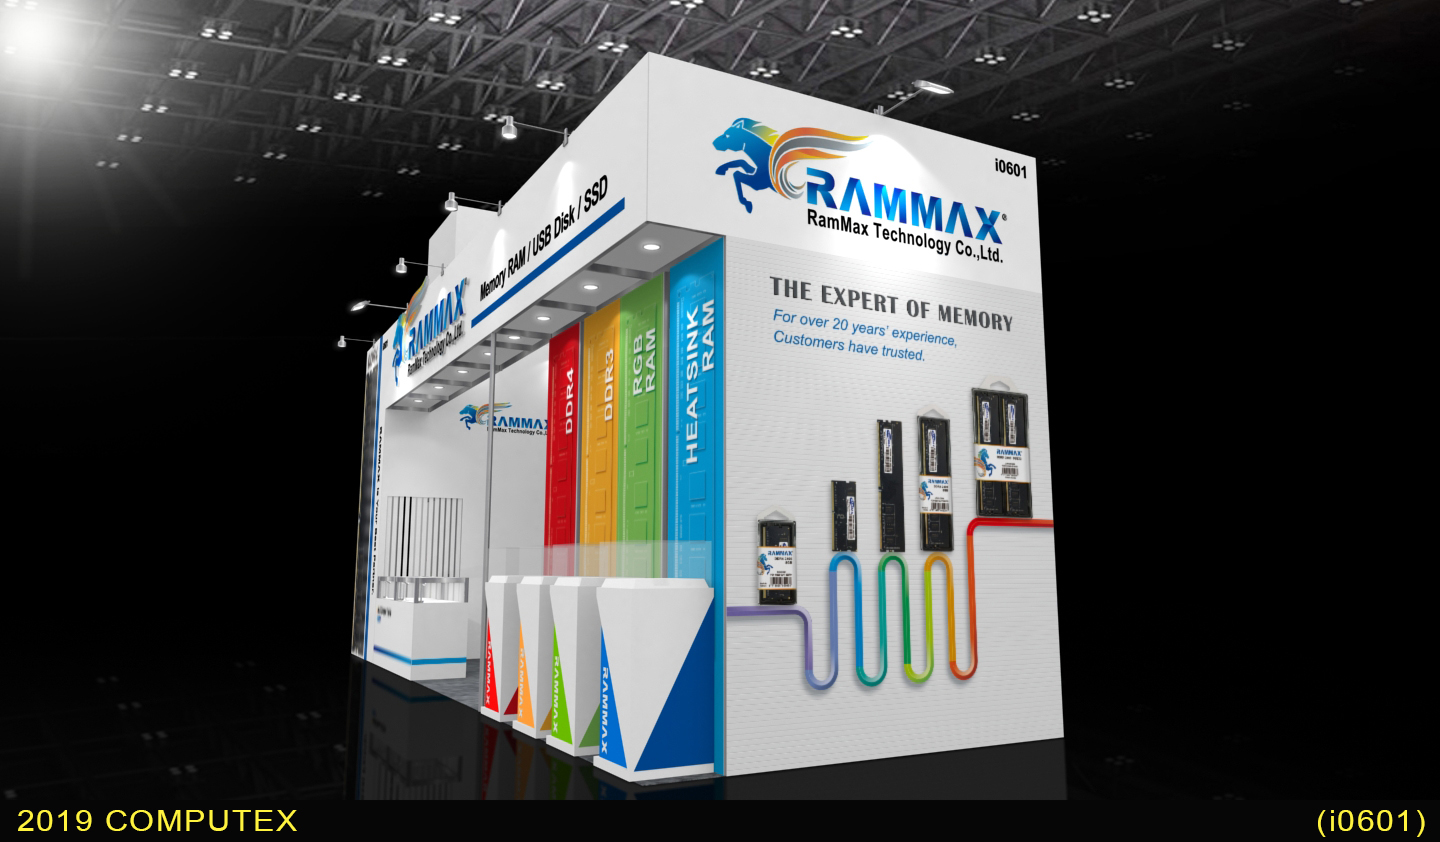 RamMax at COMPUTEX TAIPEI 2019 - WHAT'S NEW - RamMax